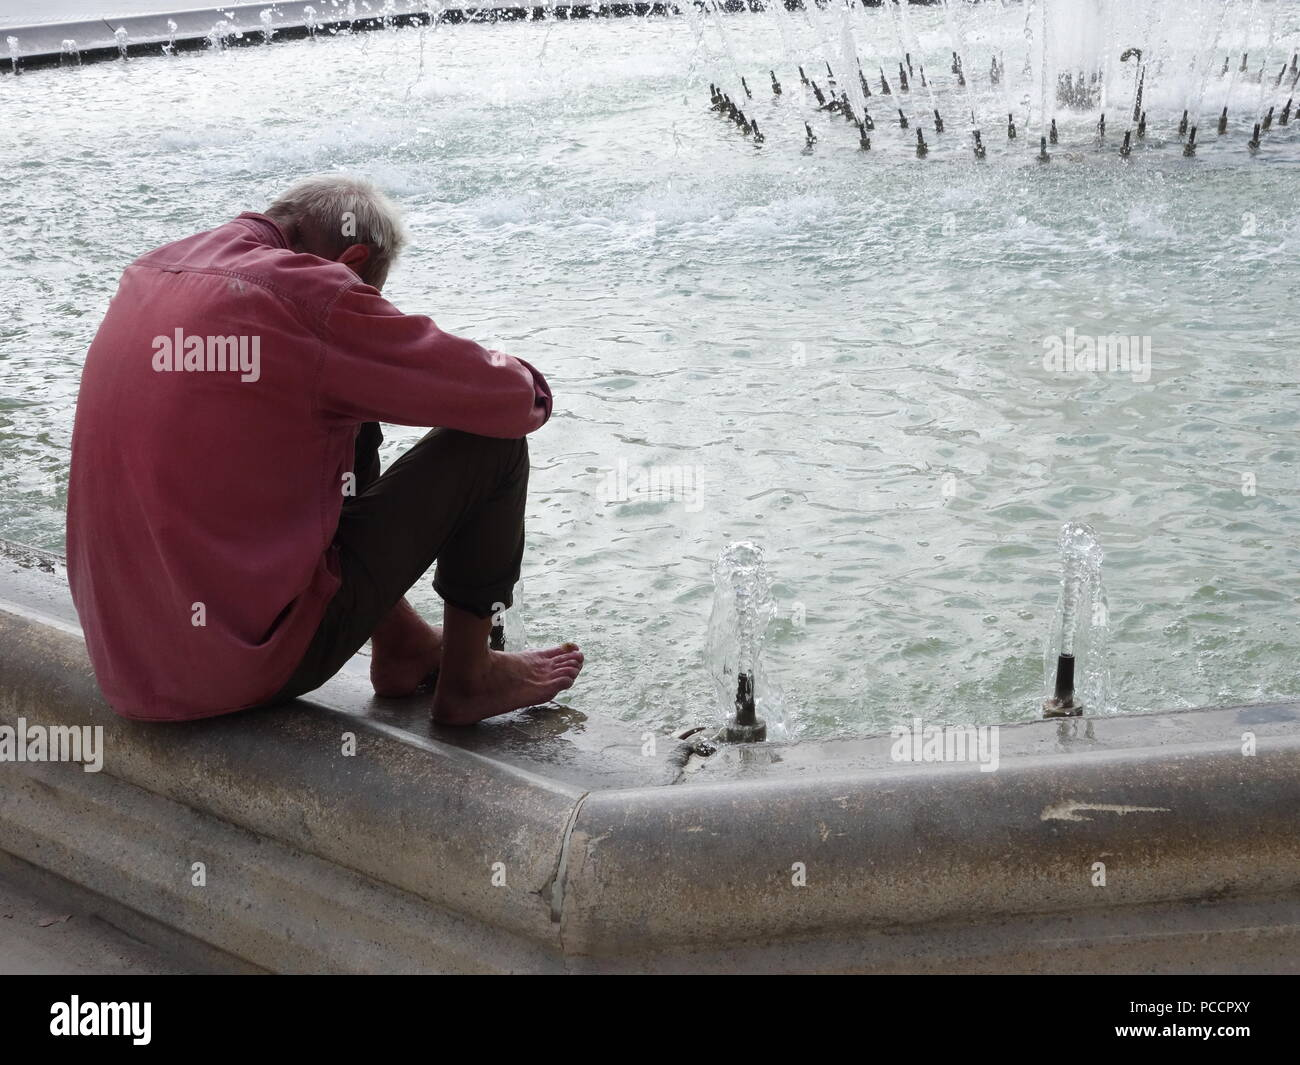 old man feeling hot and uncomfortable in the heatwave tries to keep cool by putting his feet in the cool fountain water - Stock Image